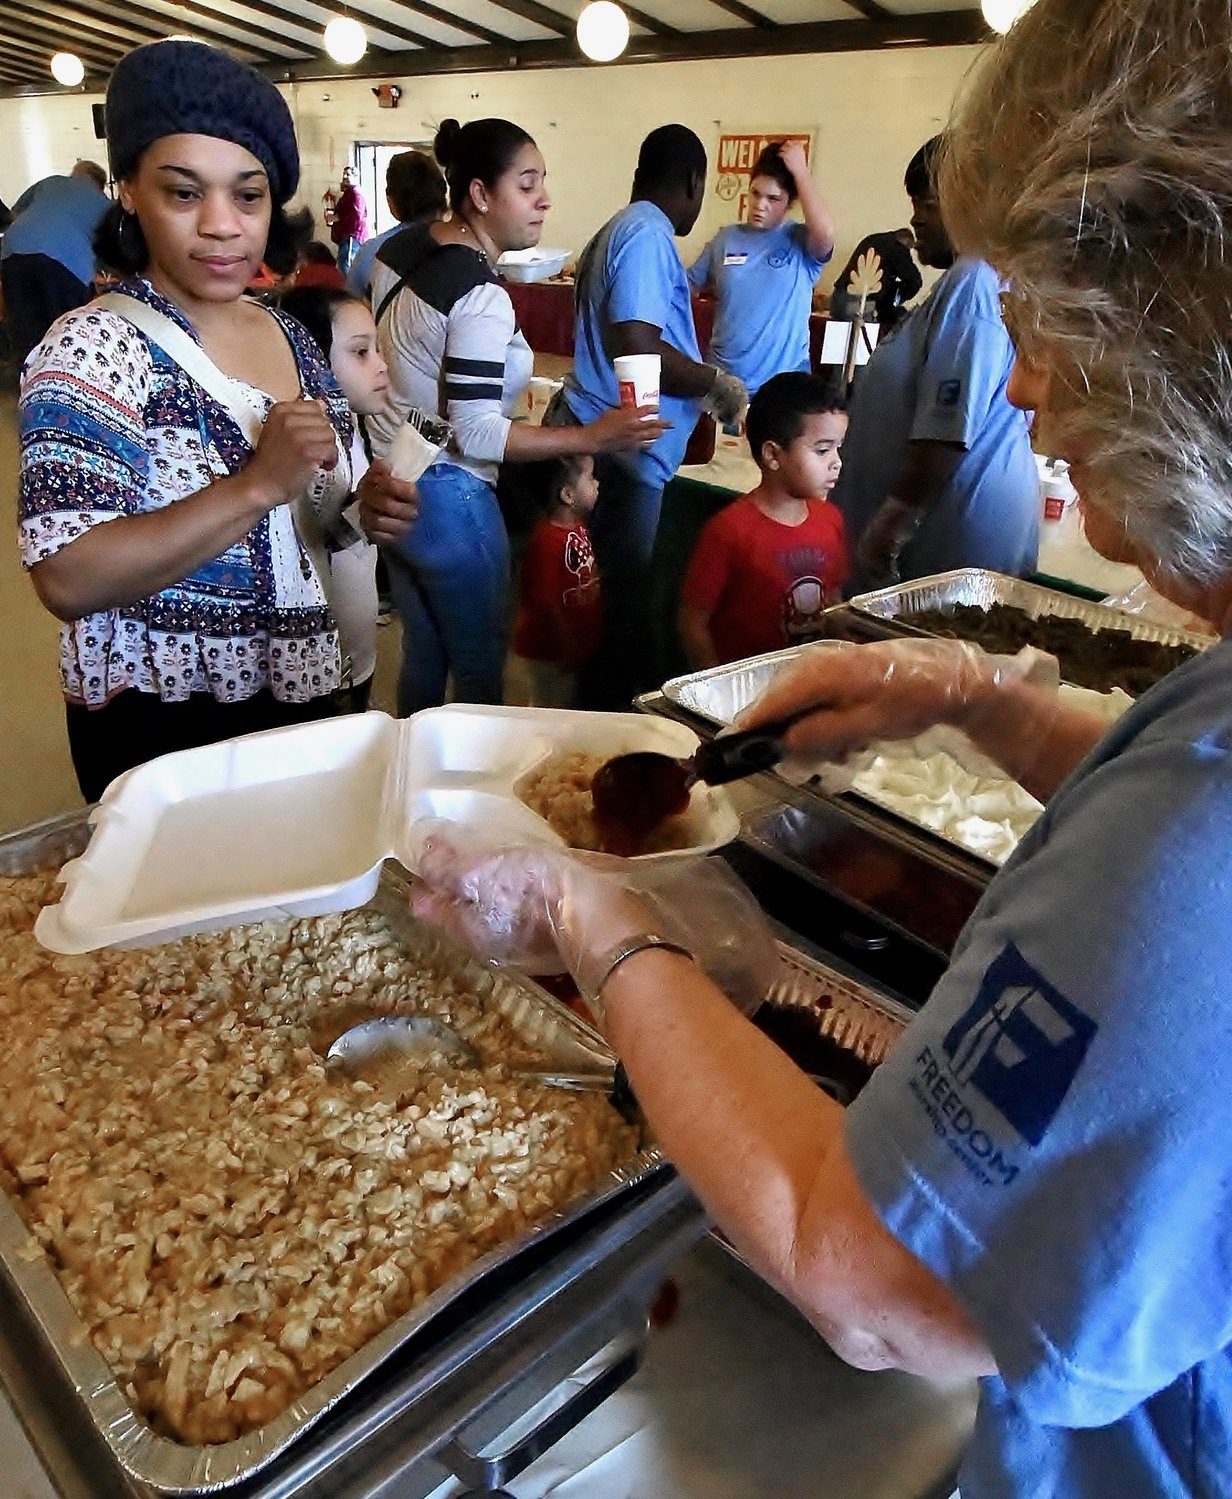 Hundreds turned out for Wednesday's Feed Bartow community dinner at the Cartersville Civic Center.